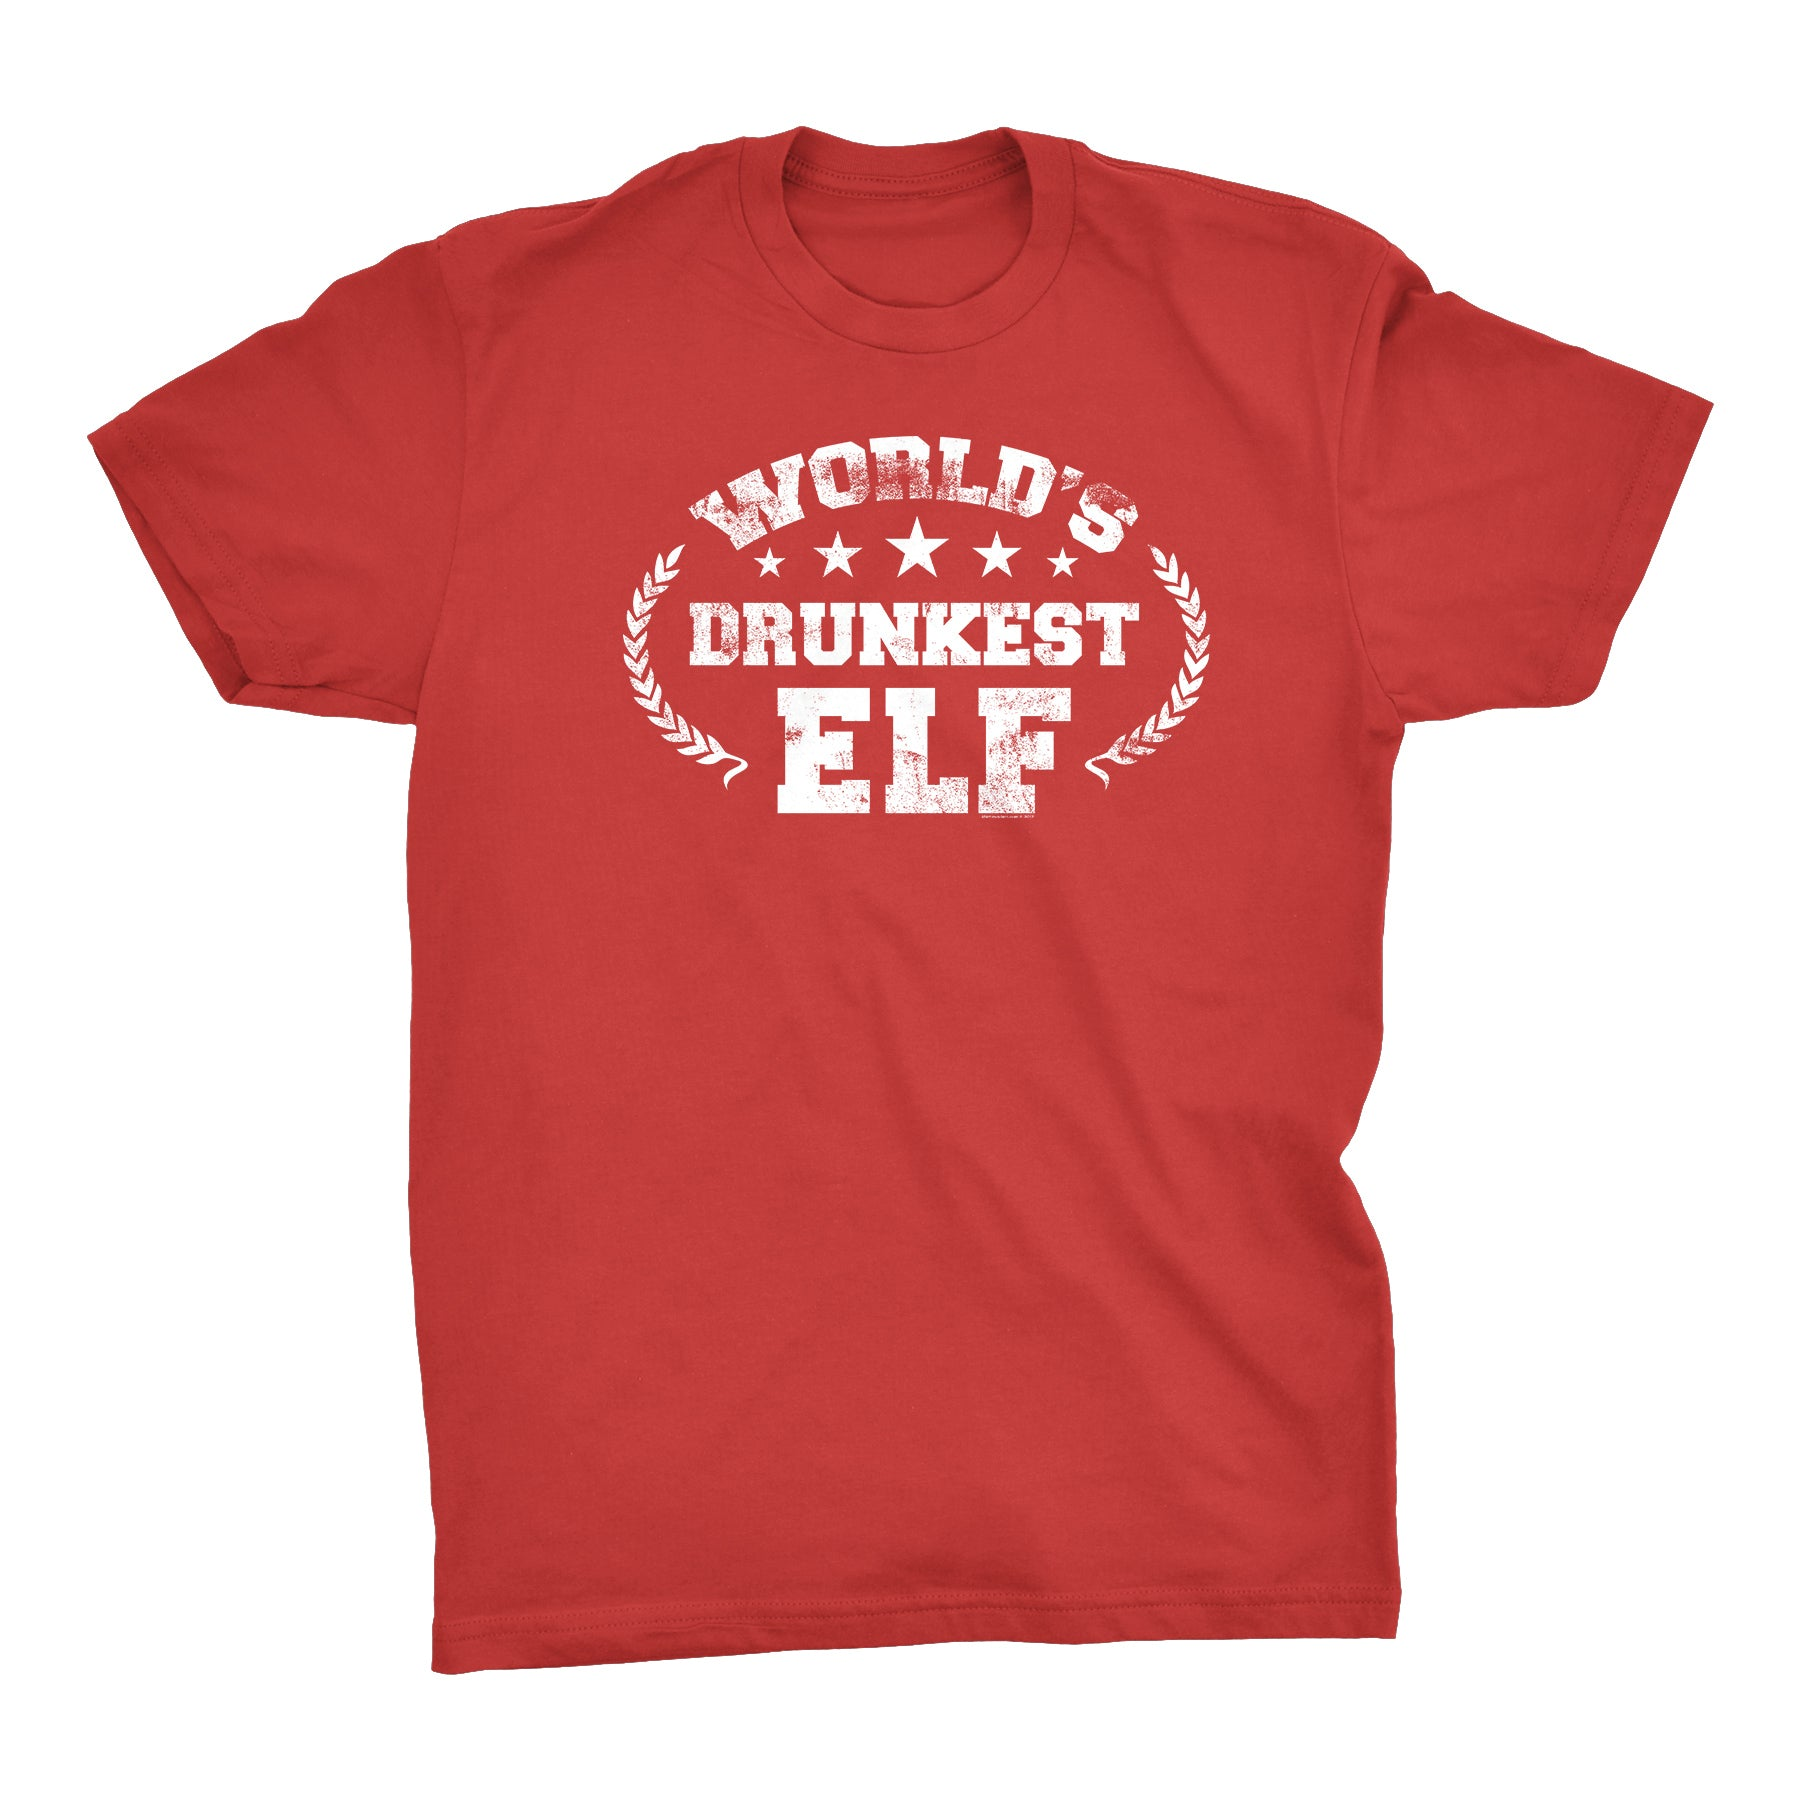 World's Drunkest Elf - Christmas T-shirt